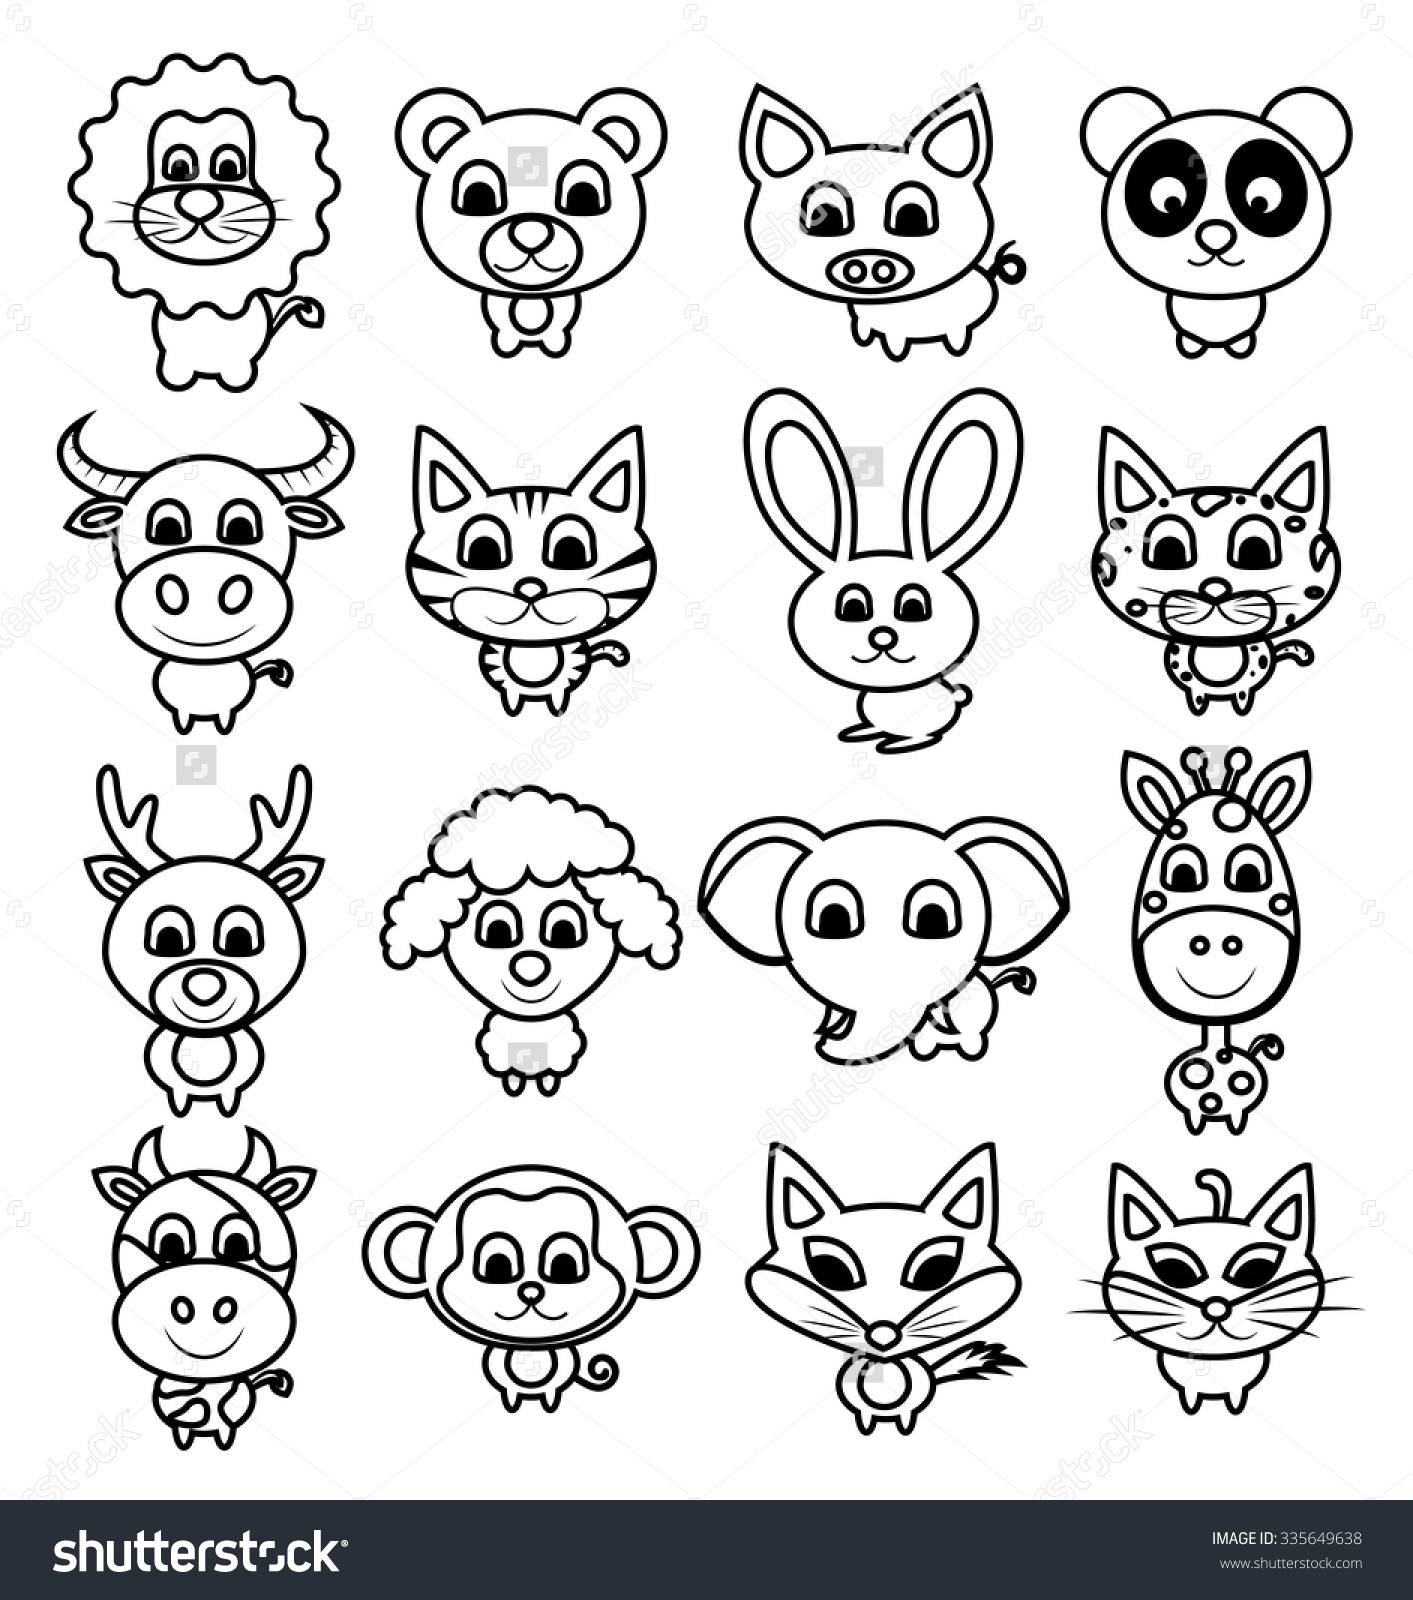 1413x1600 Cute Animal Drawing Ideas Baby Animal Drawings And Cartoons Cute